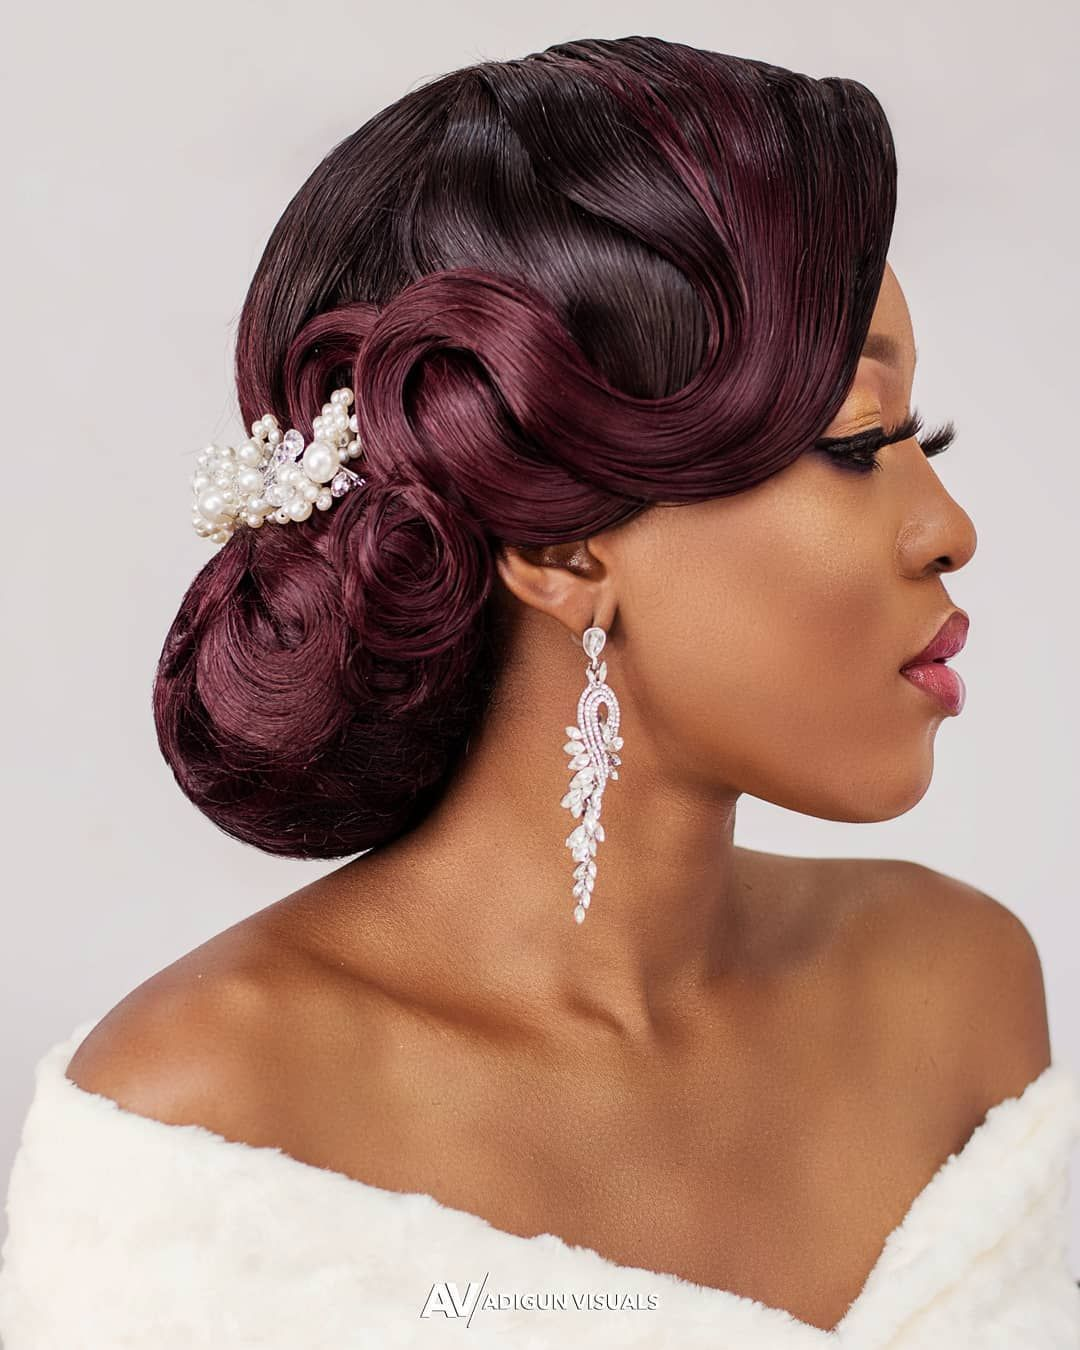 28+ Bridal hairstyles for black brides trends